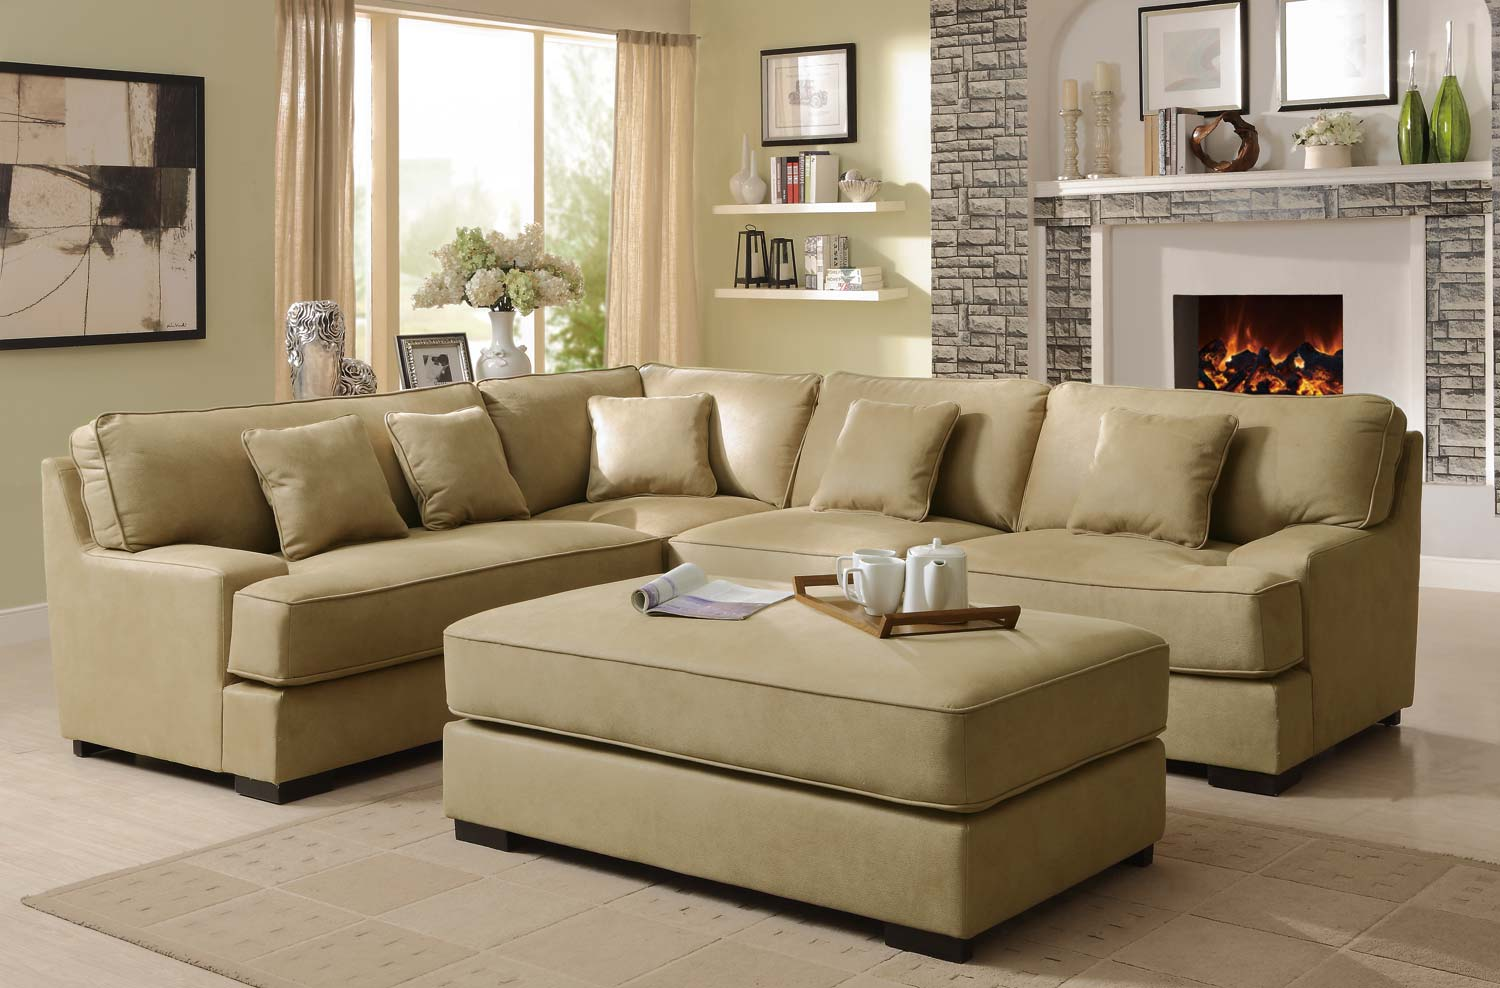 Homelegance minnis sectional sofa set beige u9759nf sect Light colored living room sets